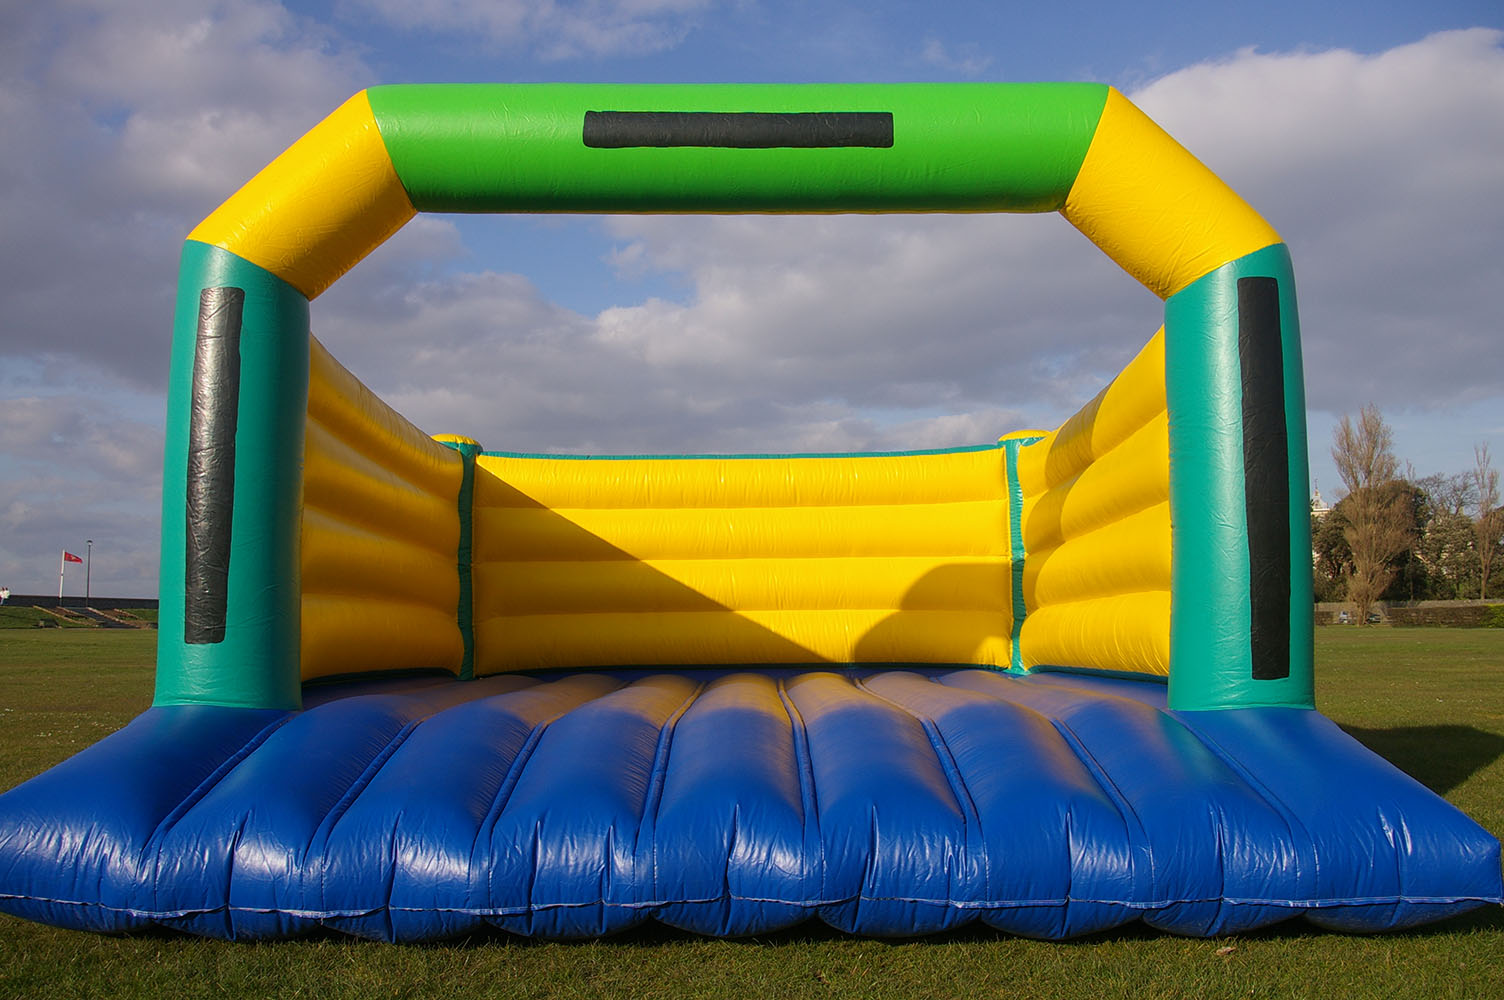 One of our larger standard bouncy castles, the Super Bouncy Castle like all of our others, is perfect for personalising with themed banners. Great for parties in halls, gardens, fetes and school fairs. Suitable for all ages.